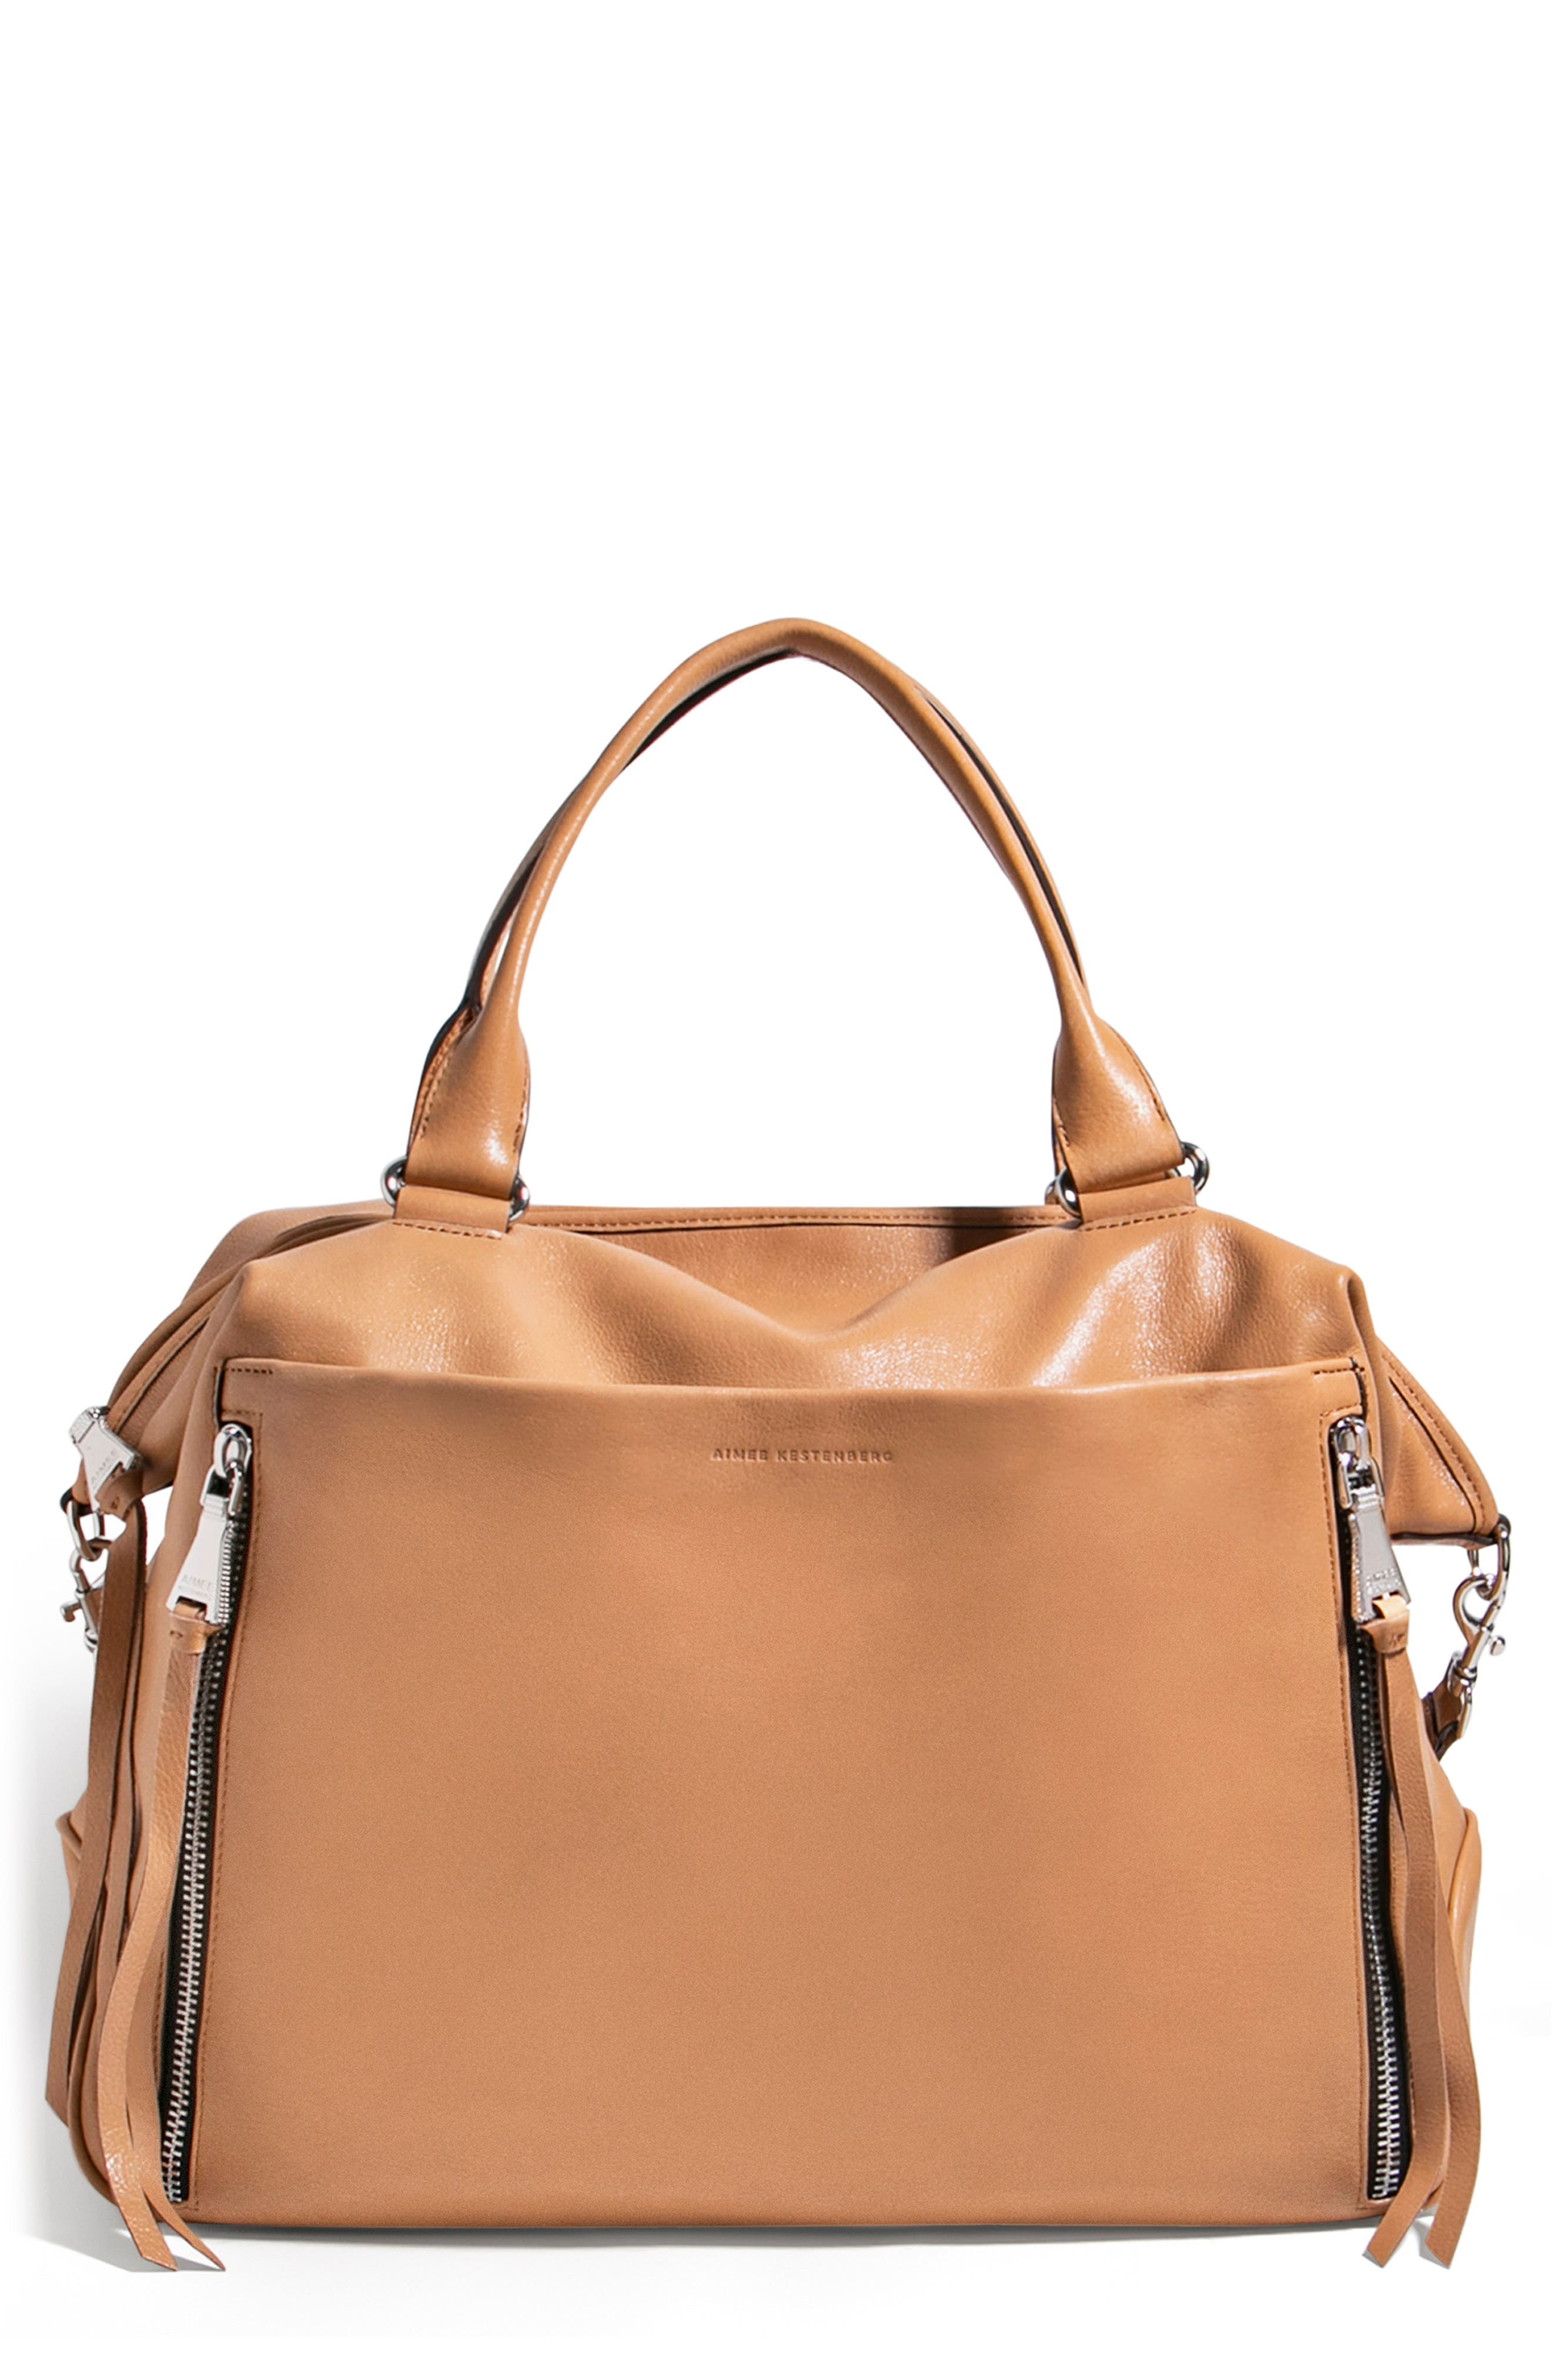 Let's Ride Overnighter Leather Satchel